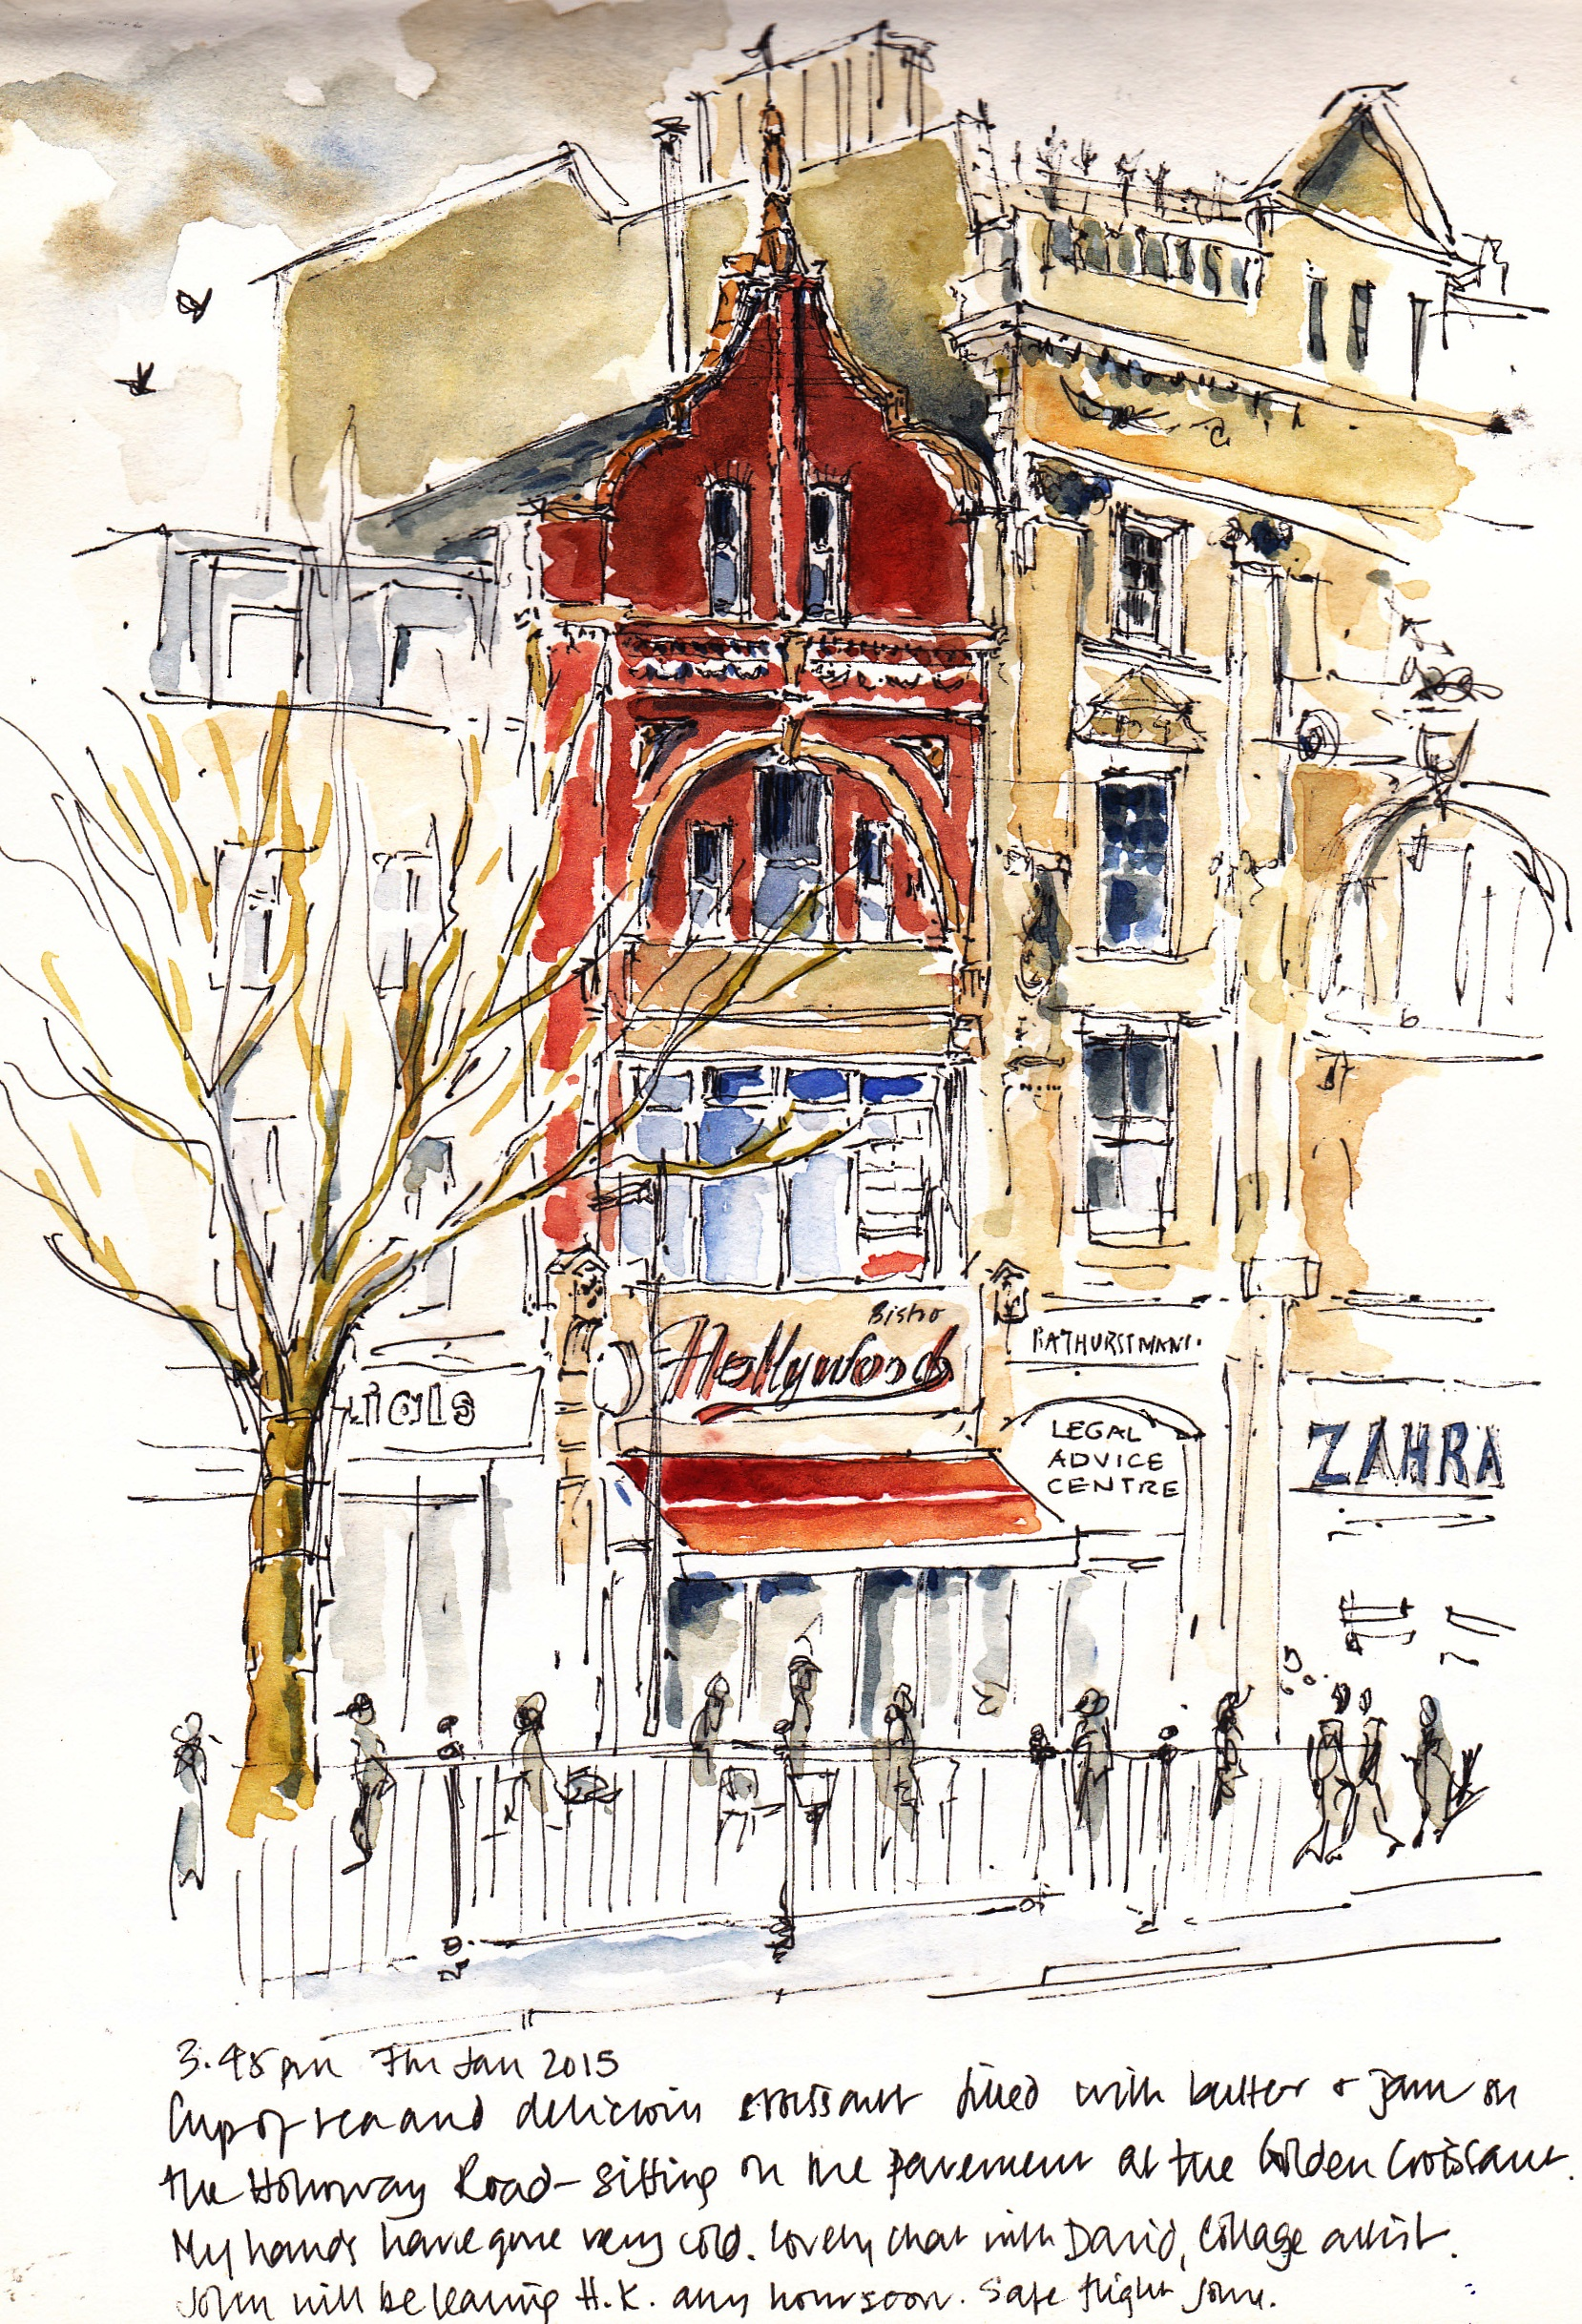 pen and ink sketch Hollyood cafe Holloway Road